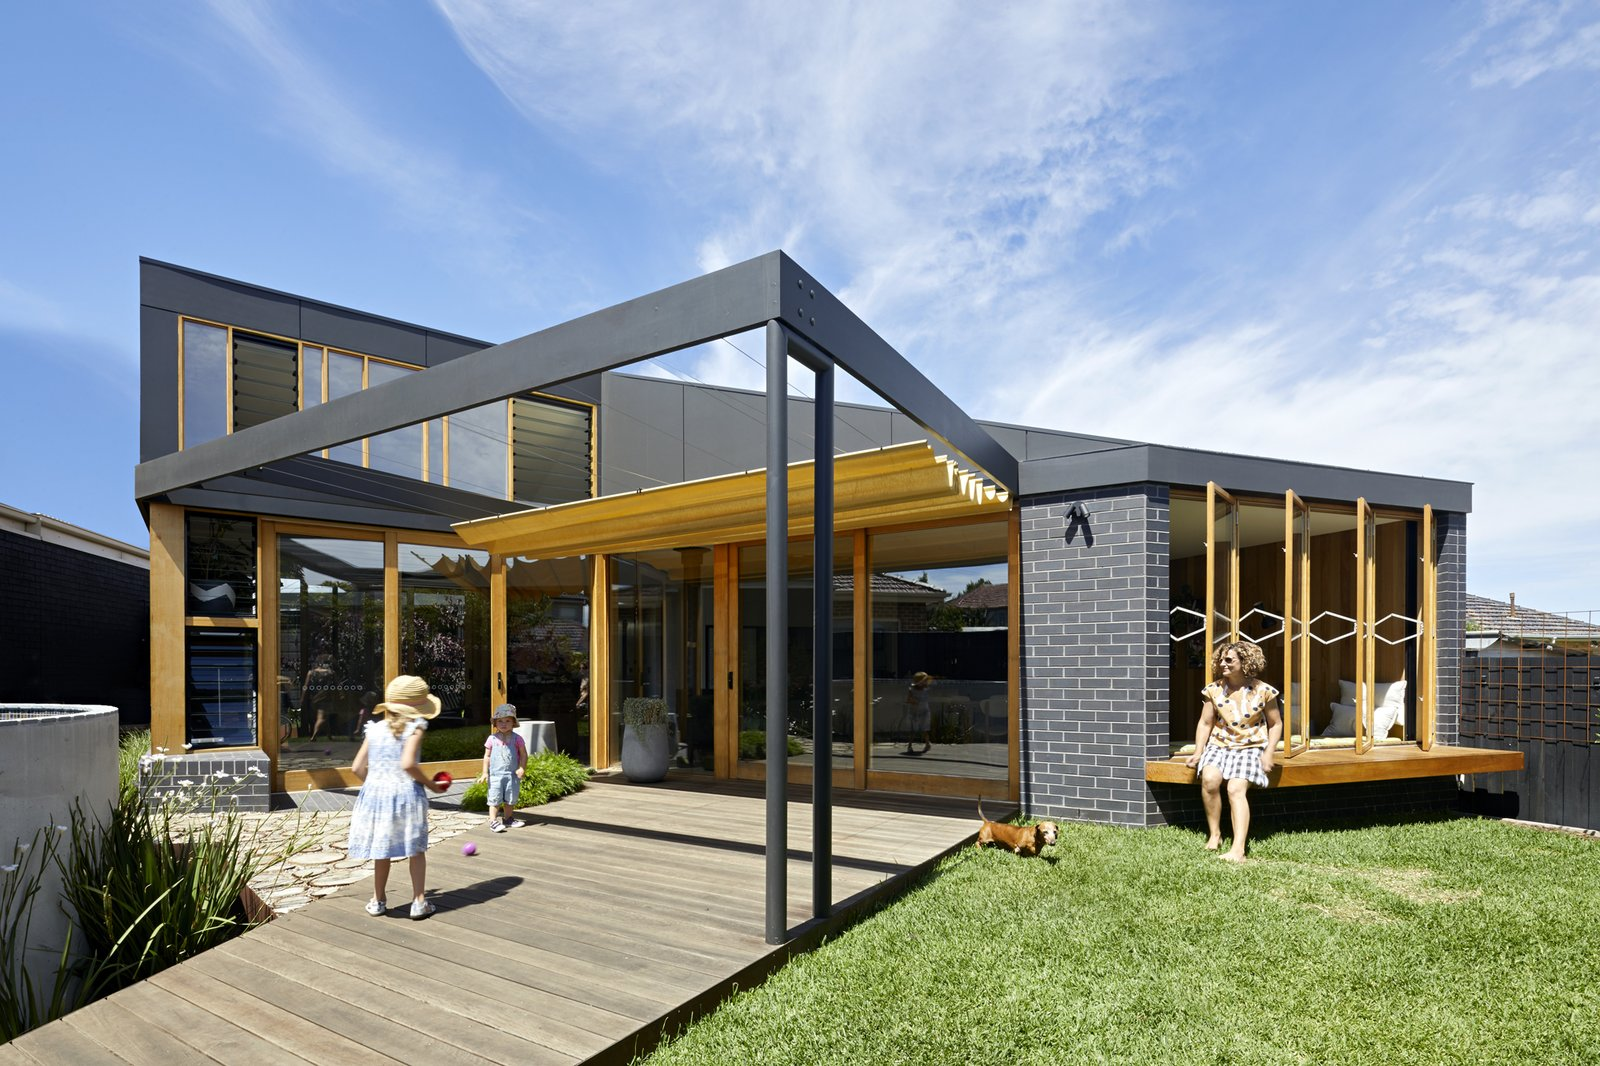 A 1960s Melbourne Home Gets a Summery Extension Inspired by Caravan Tents